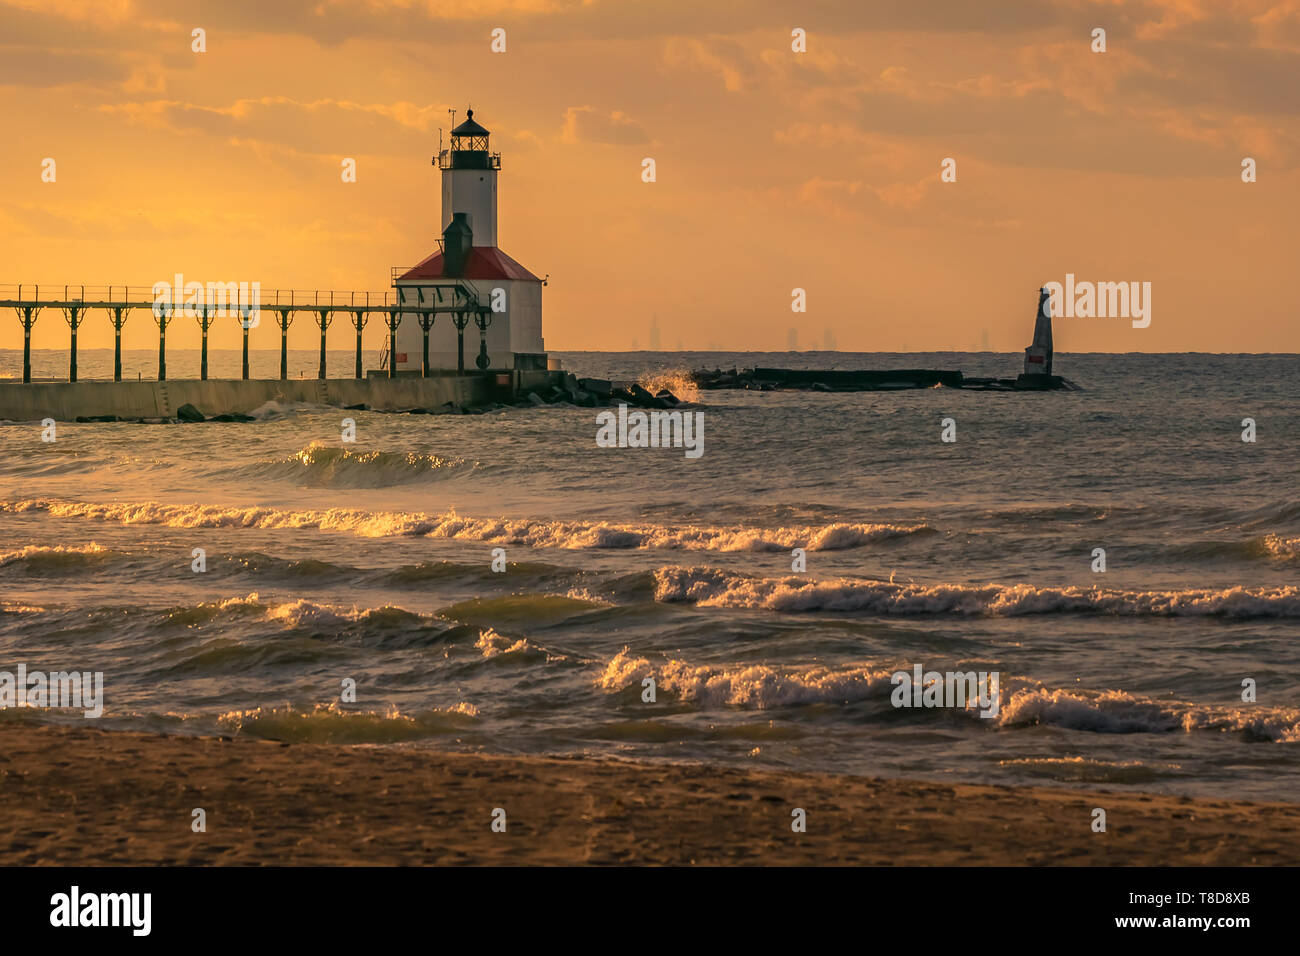 Rip Current Water Stock Photos & Rip Current Water Stock